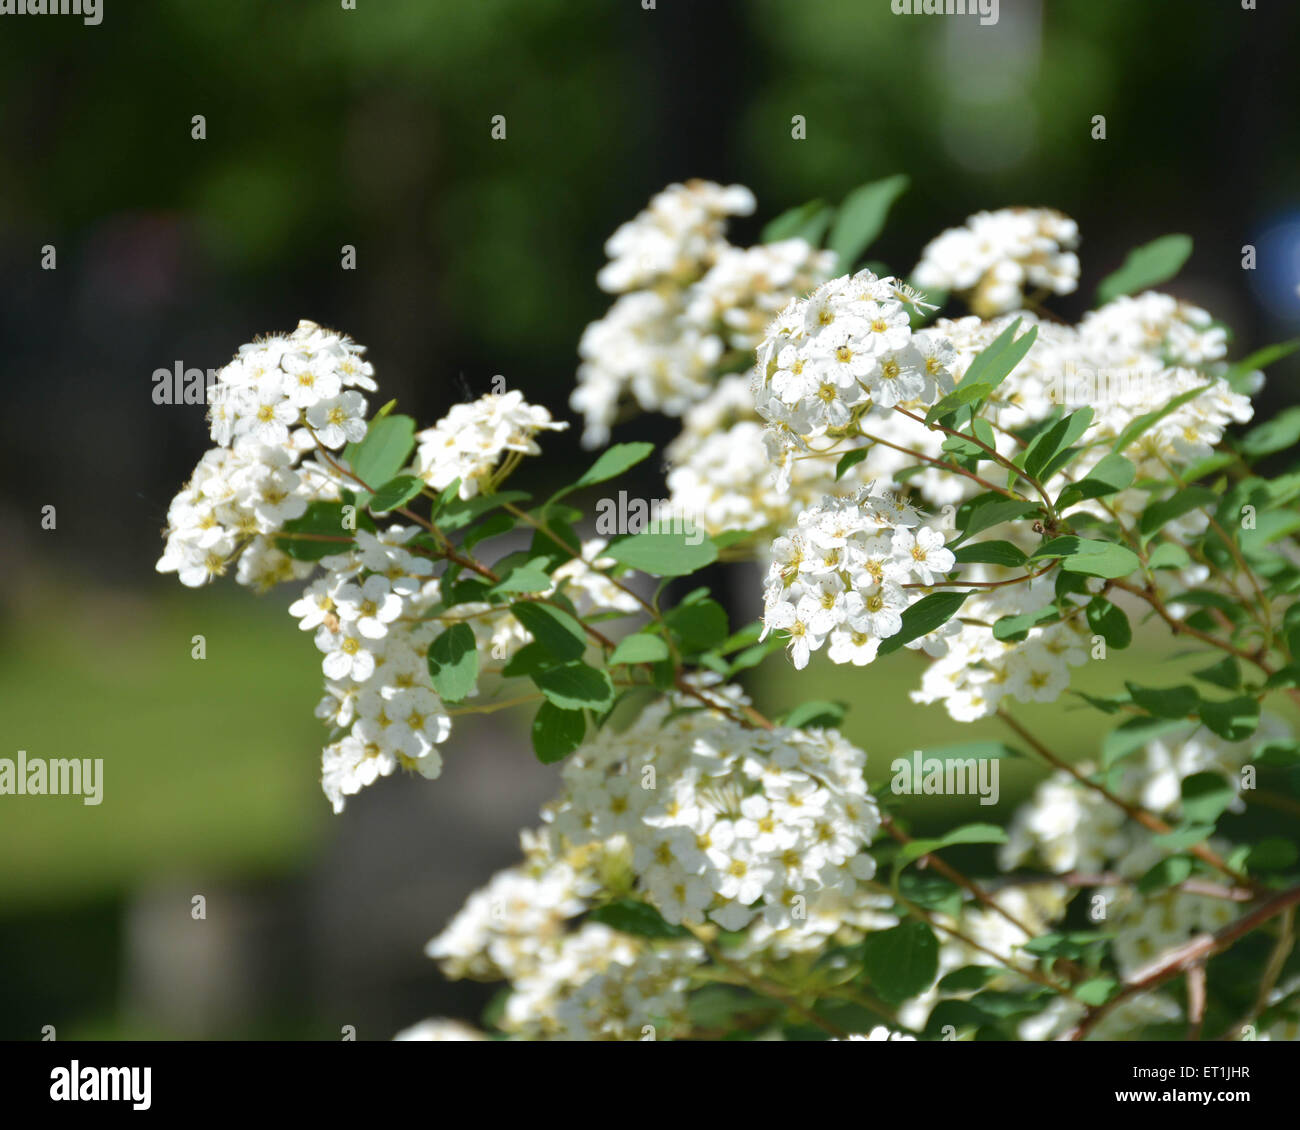 White Flowers with Blurred Background-2 - Stock Image